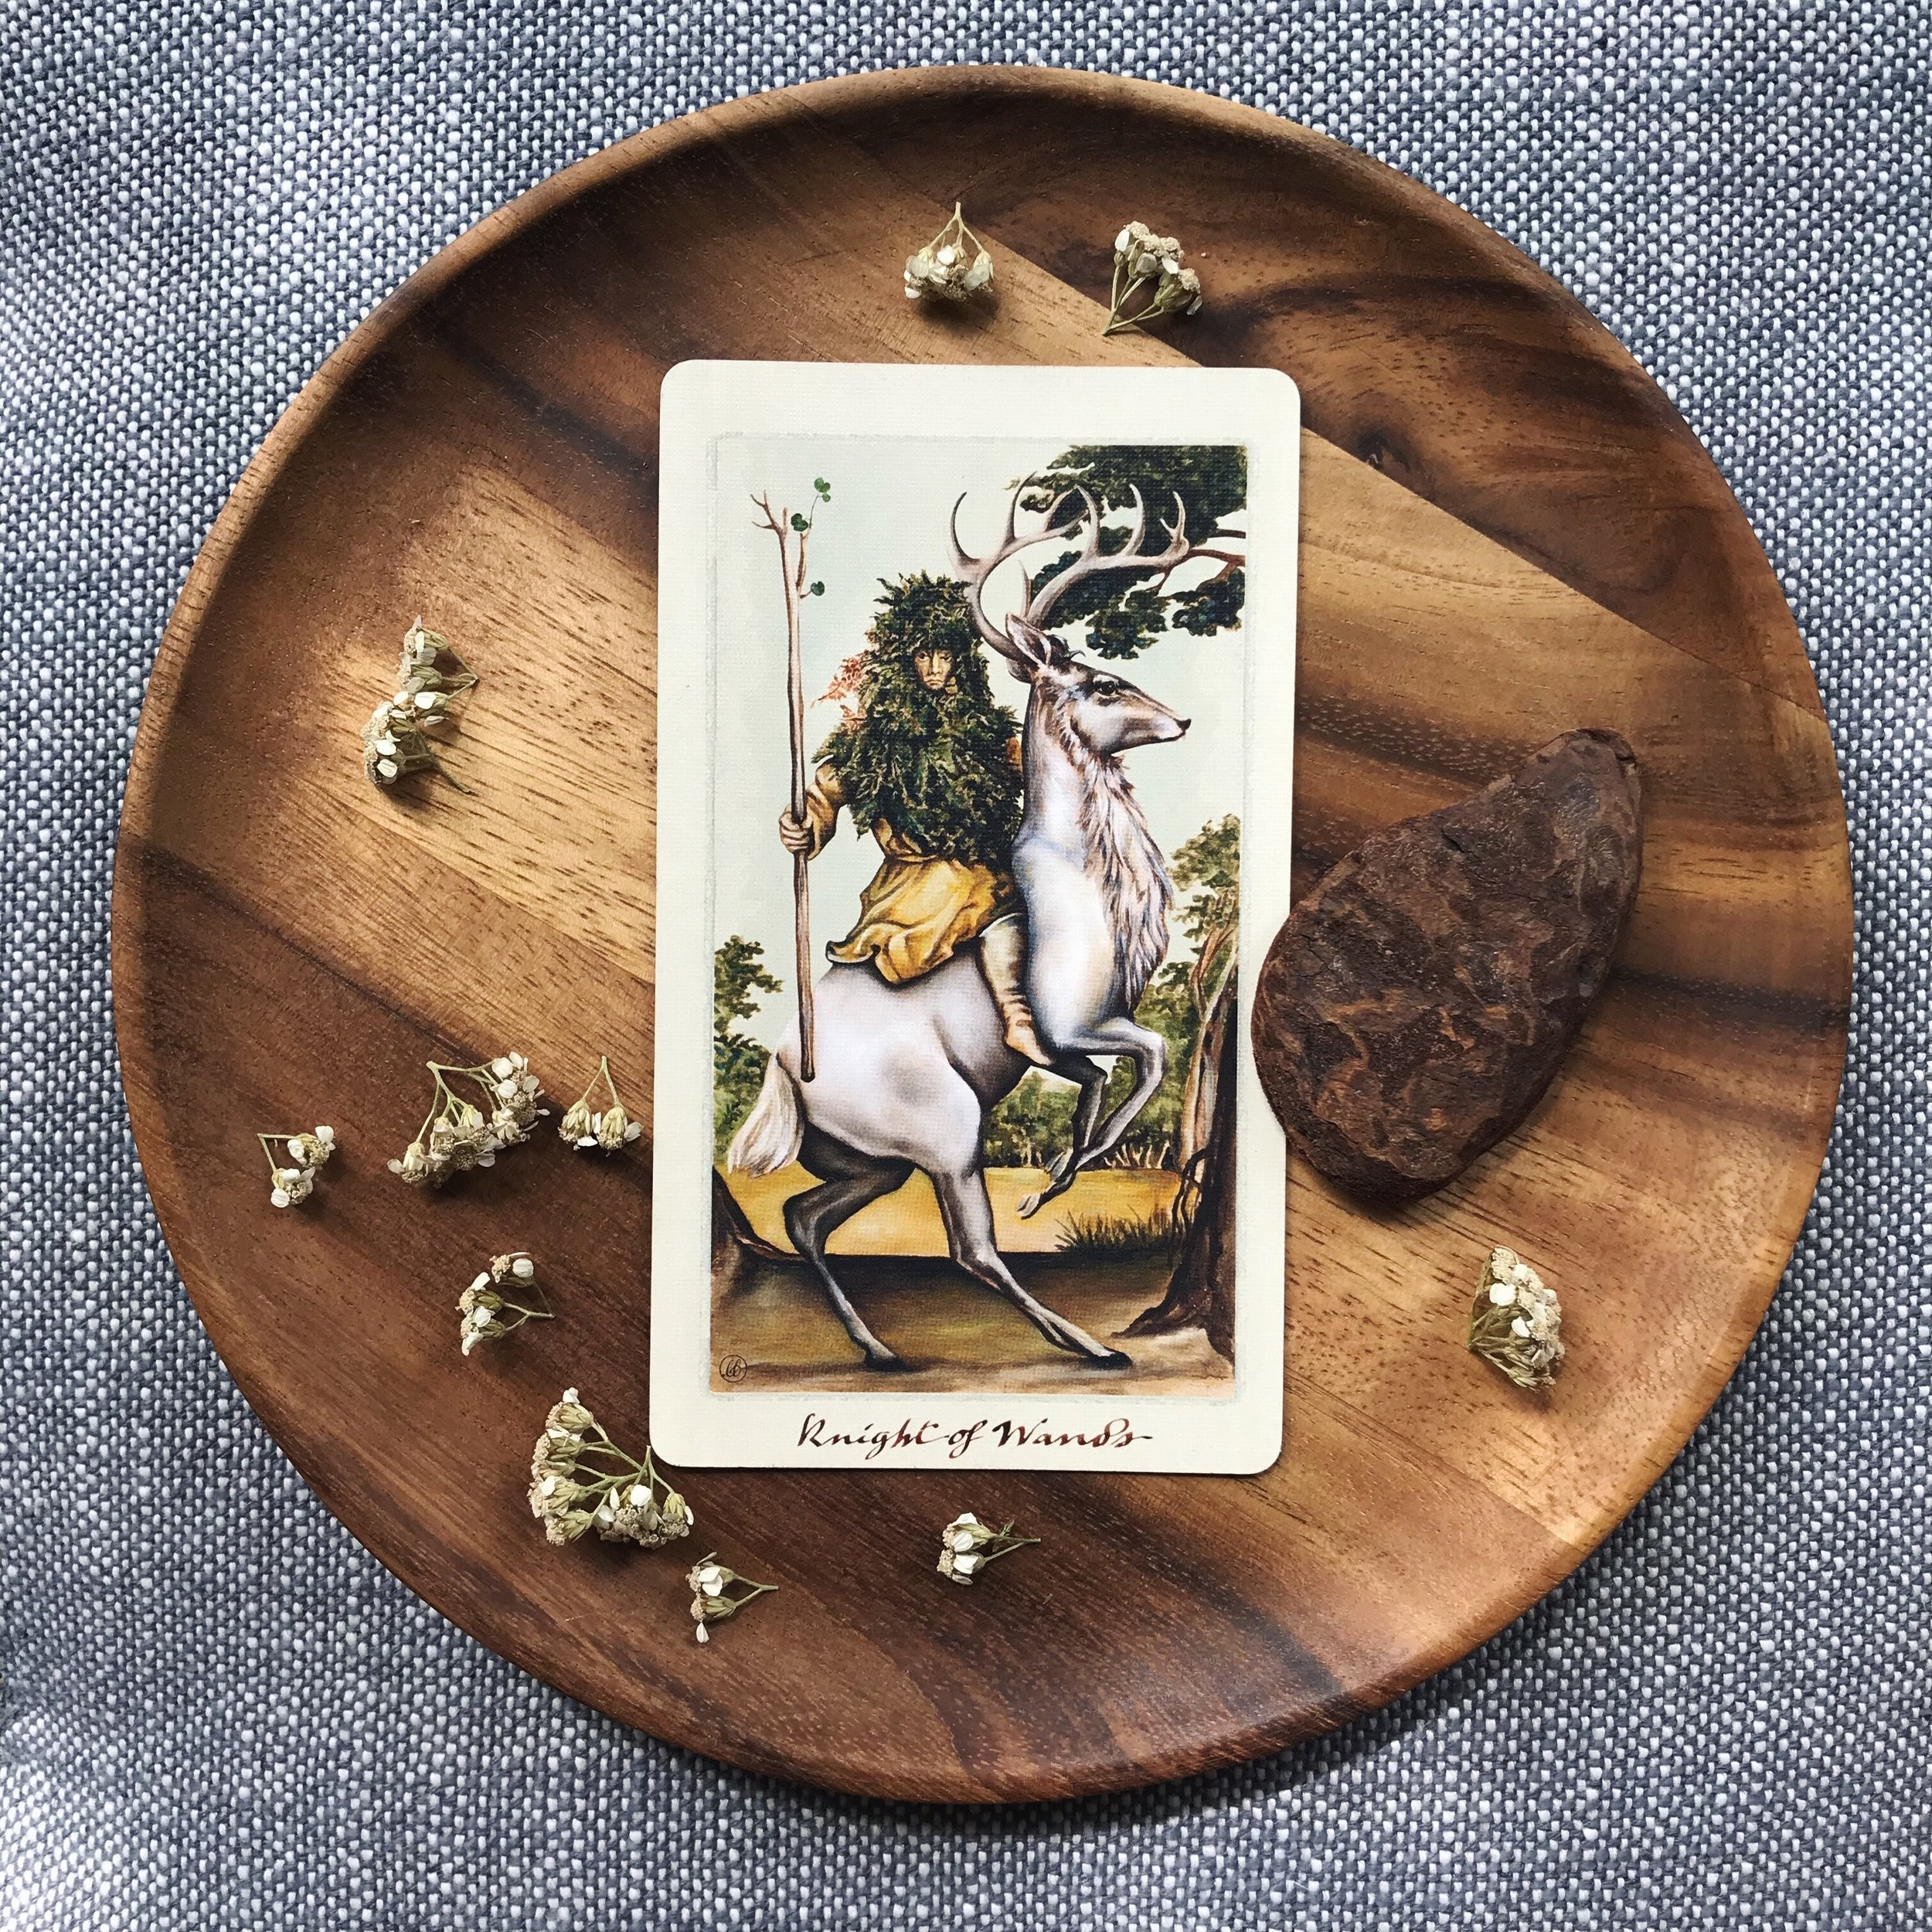 Blog — CRONE OF WANDS